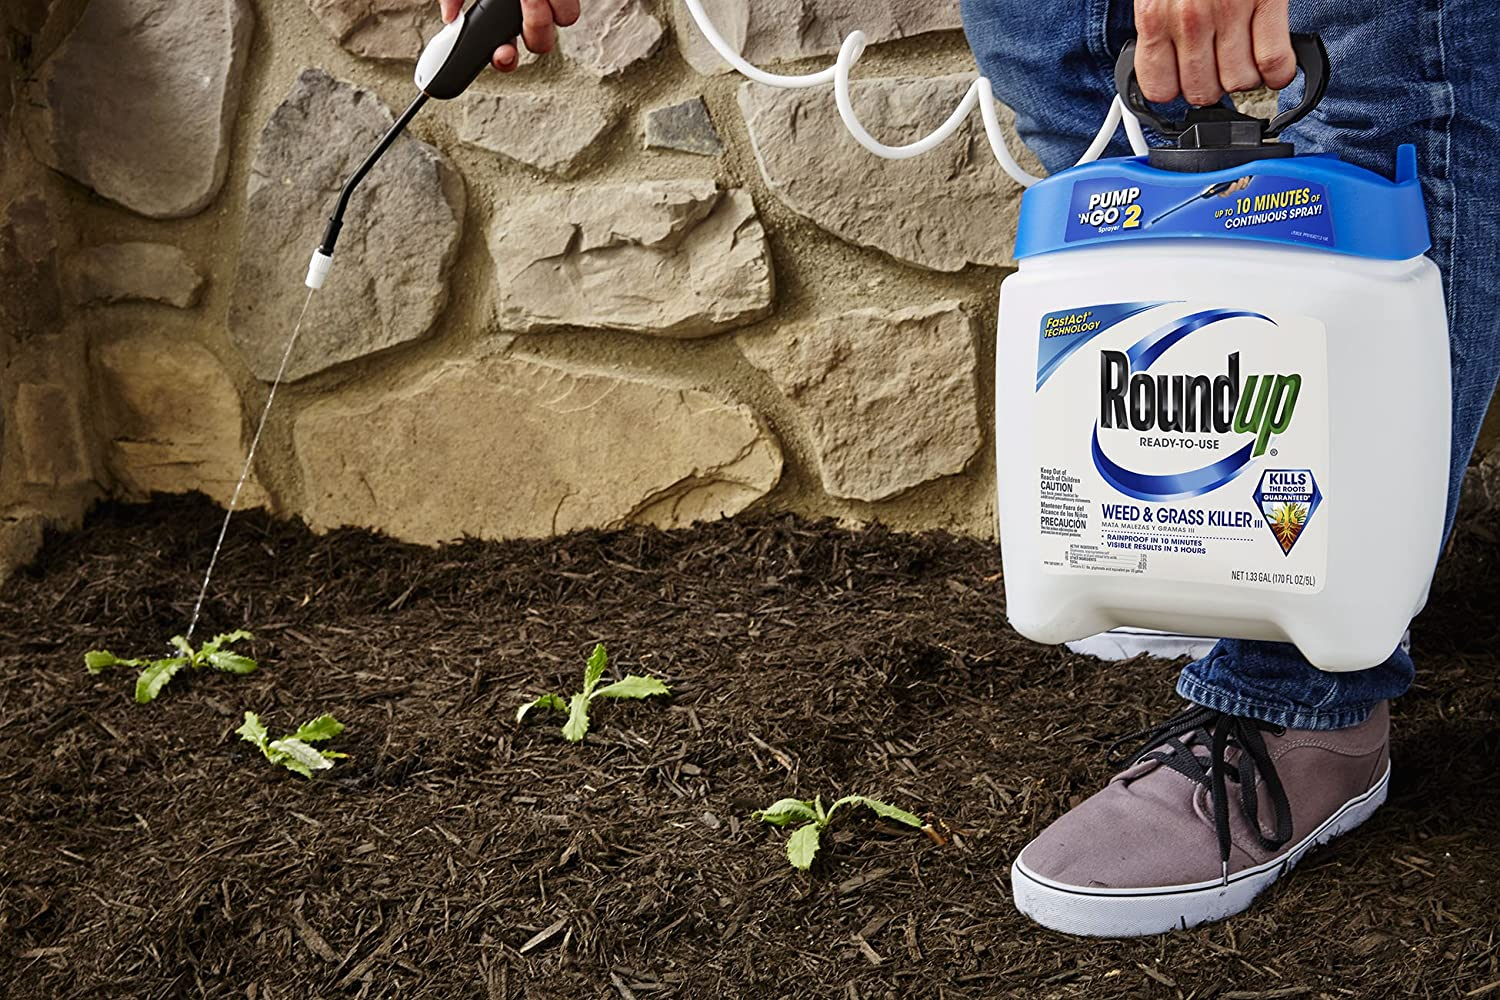 Amazon.com: Roundup 5100110 Weed and Grass Killer III Ready-to-Use ...